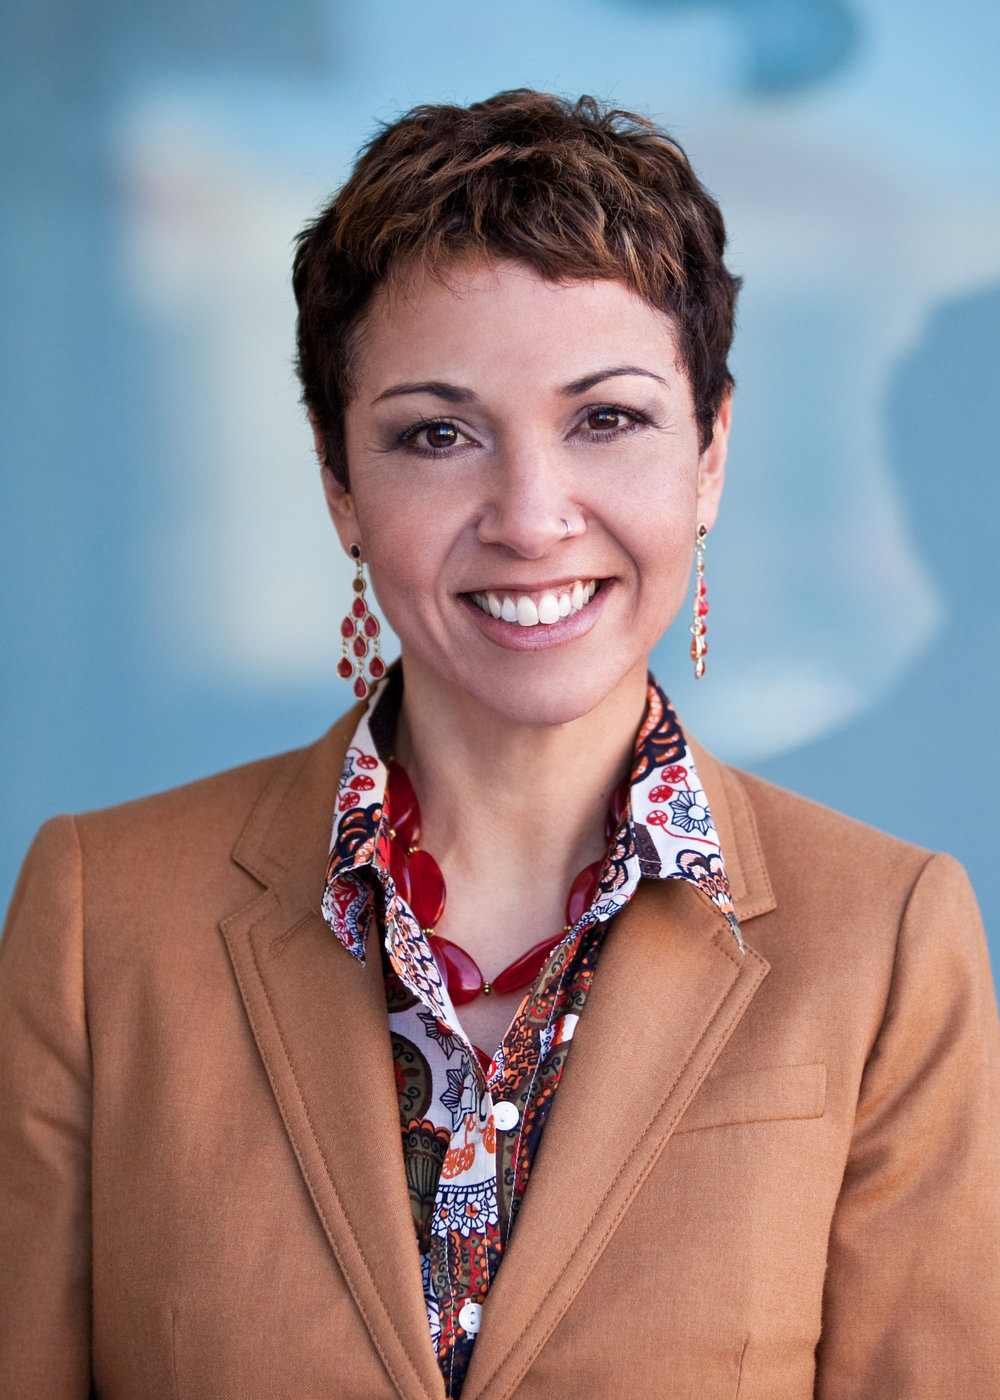 Tawney Brunsch (Oglala Lakota), Executive Director of Lakota Funds